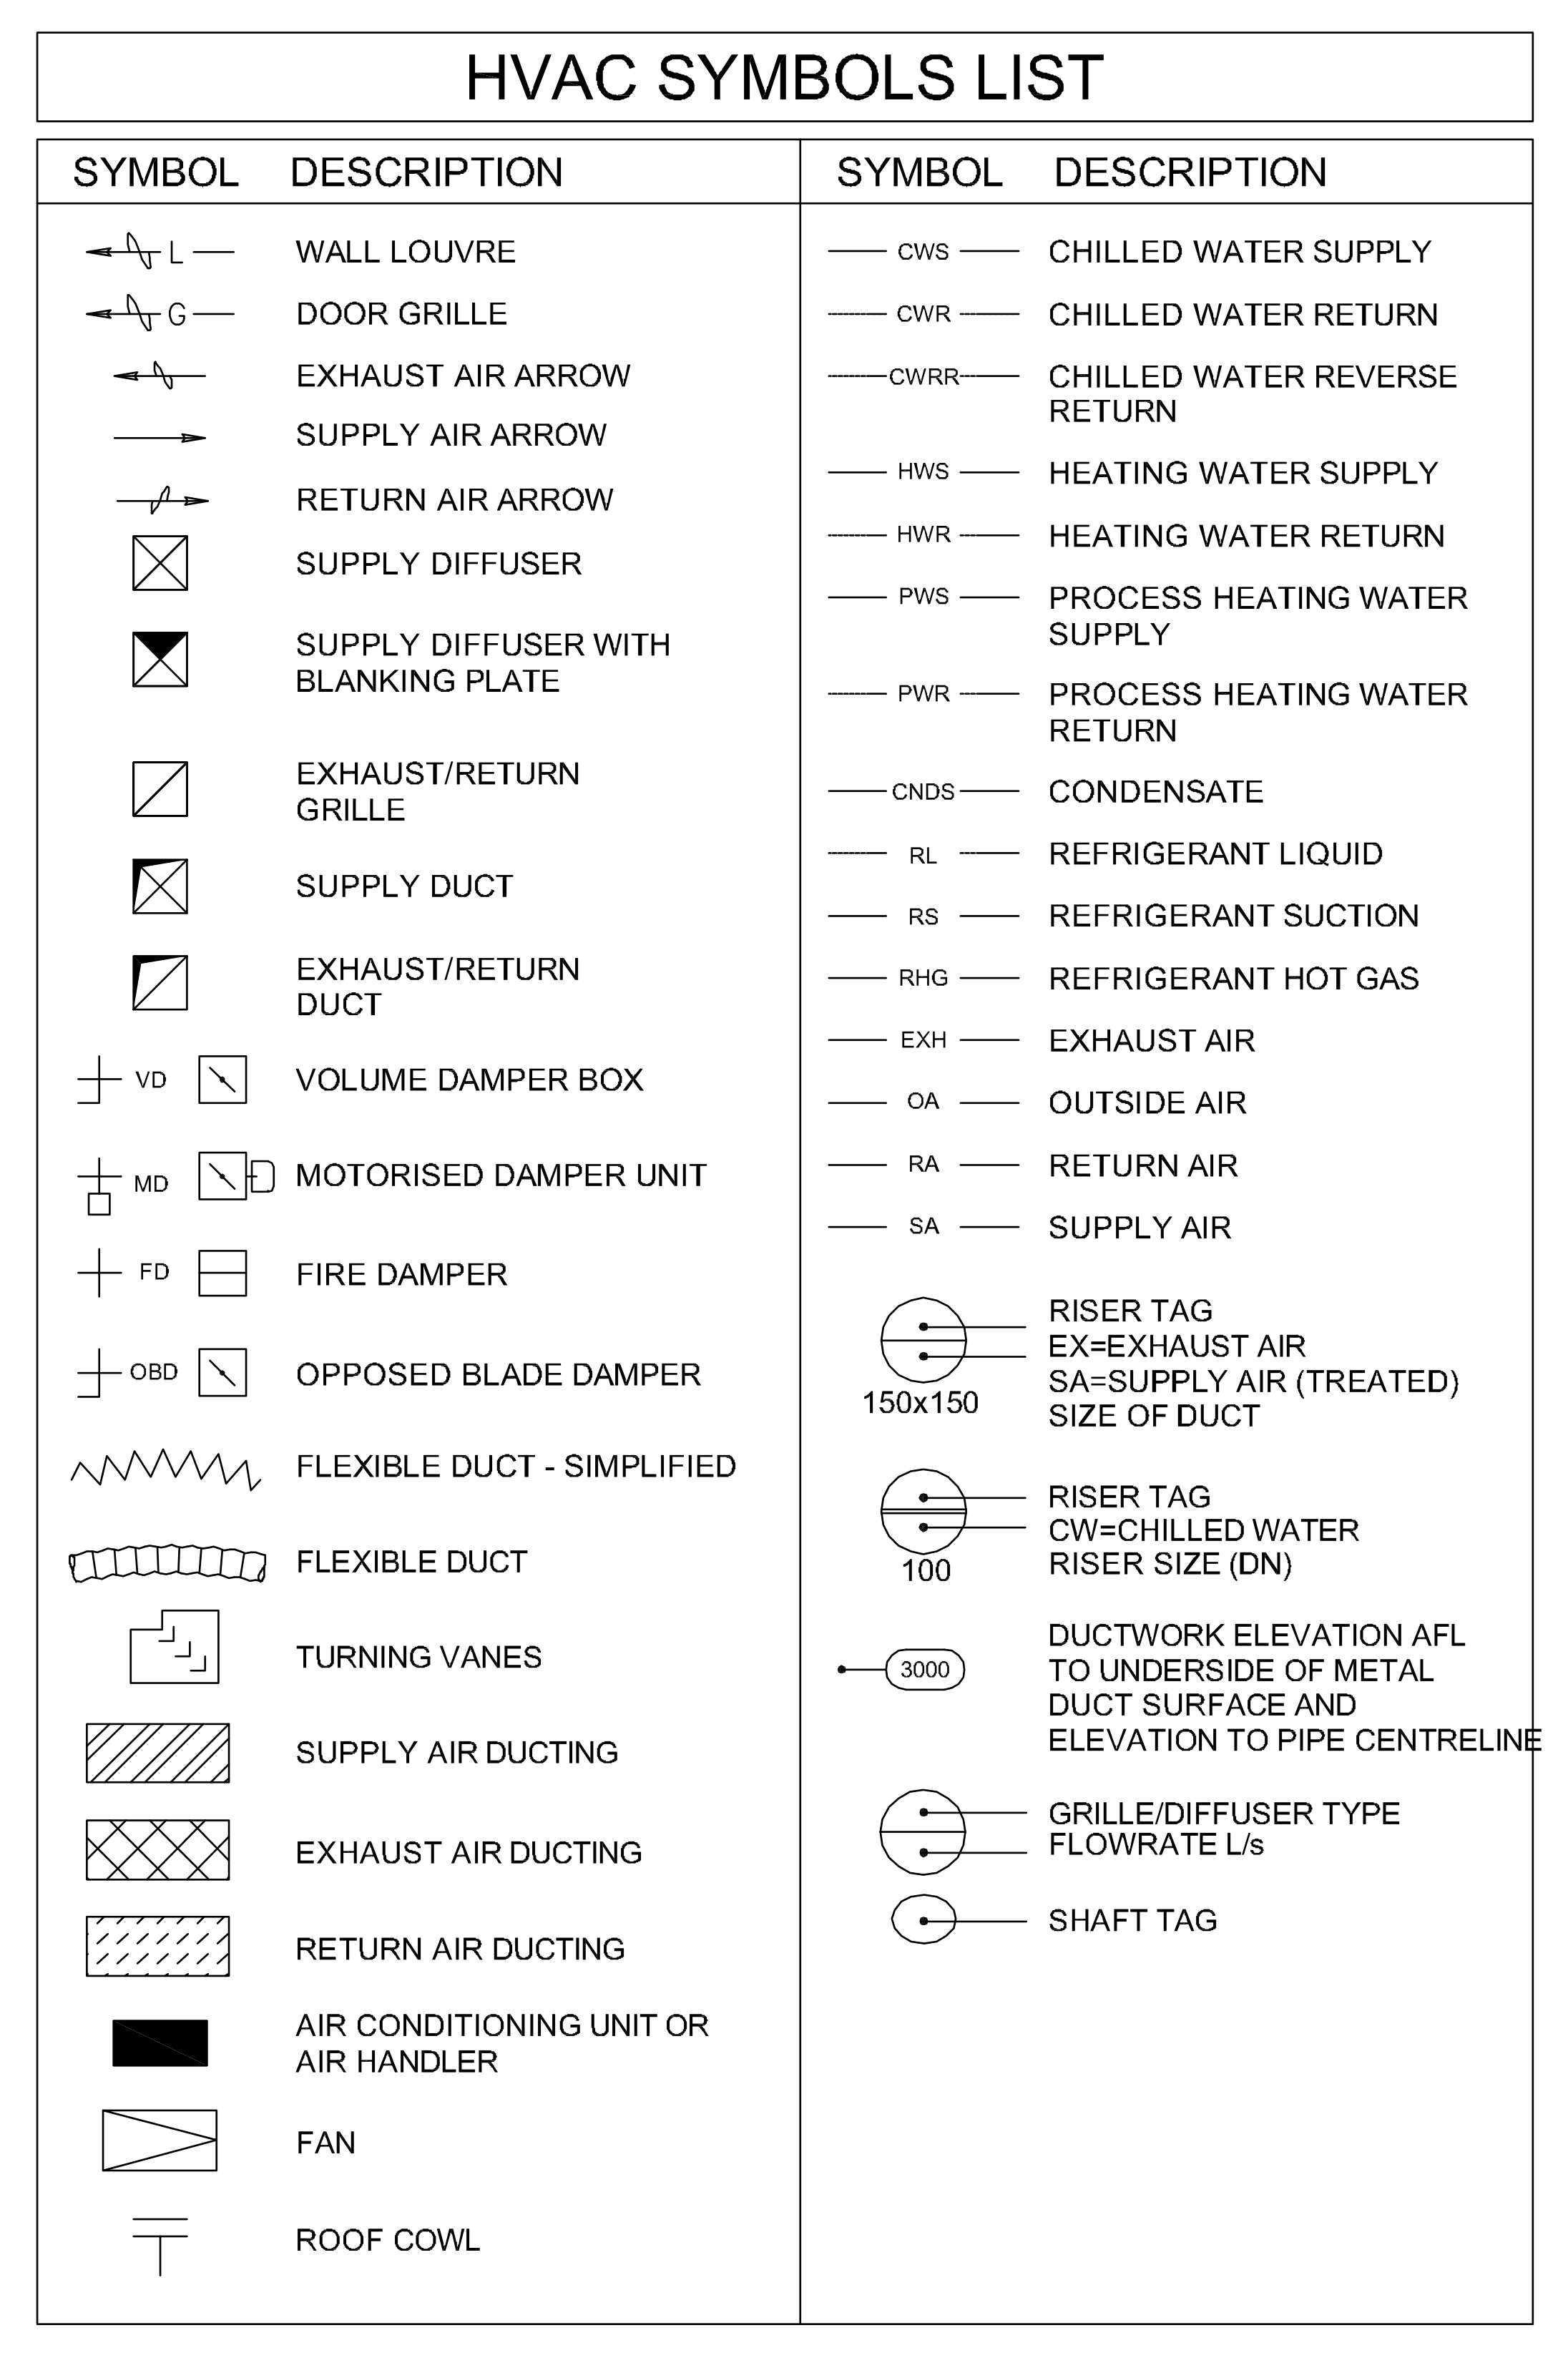 HVAC Symbols List – Free CAD Blocks in DWG file format | Hvac Drawing Symbols Free |  | Free CAD Blocks in DWG file format - Draftsperson.net